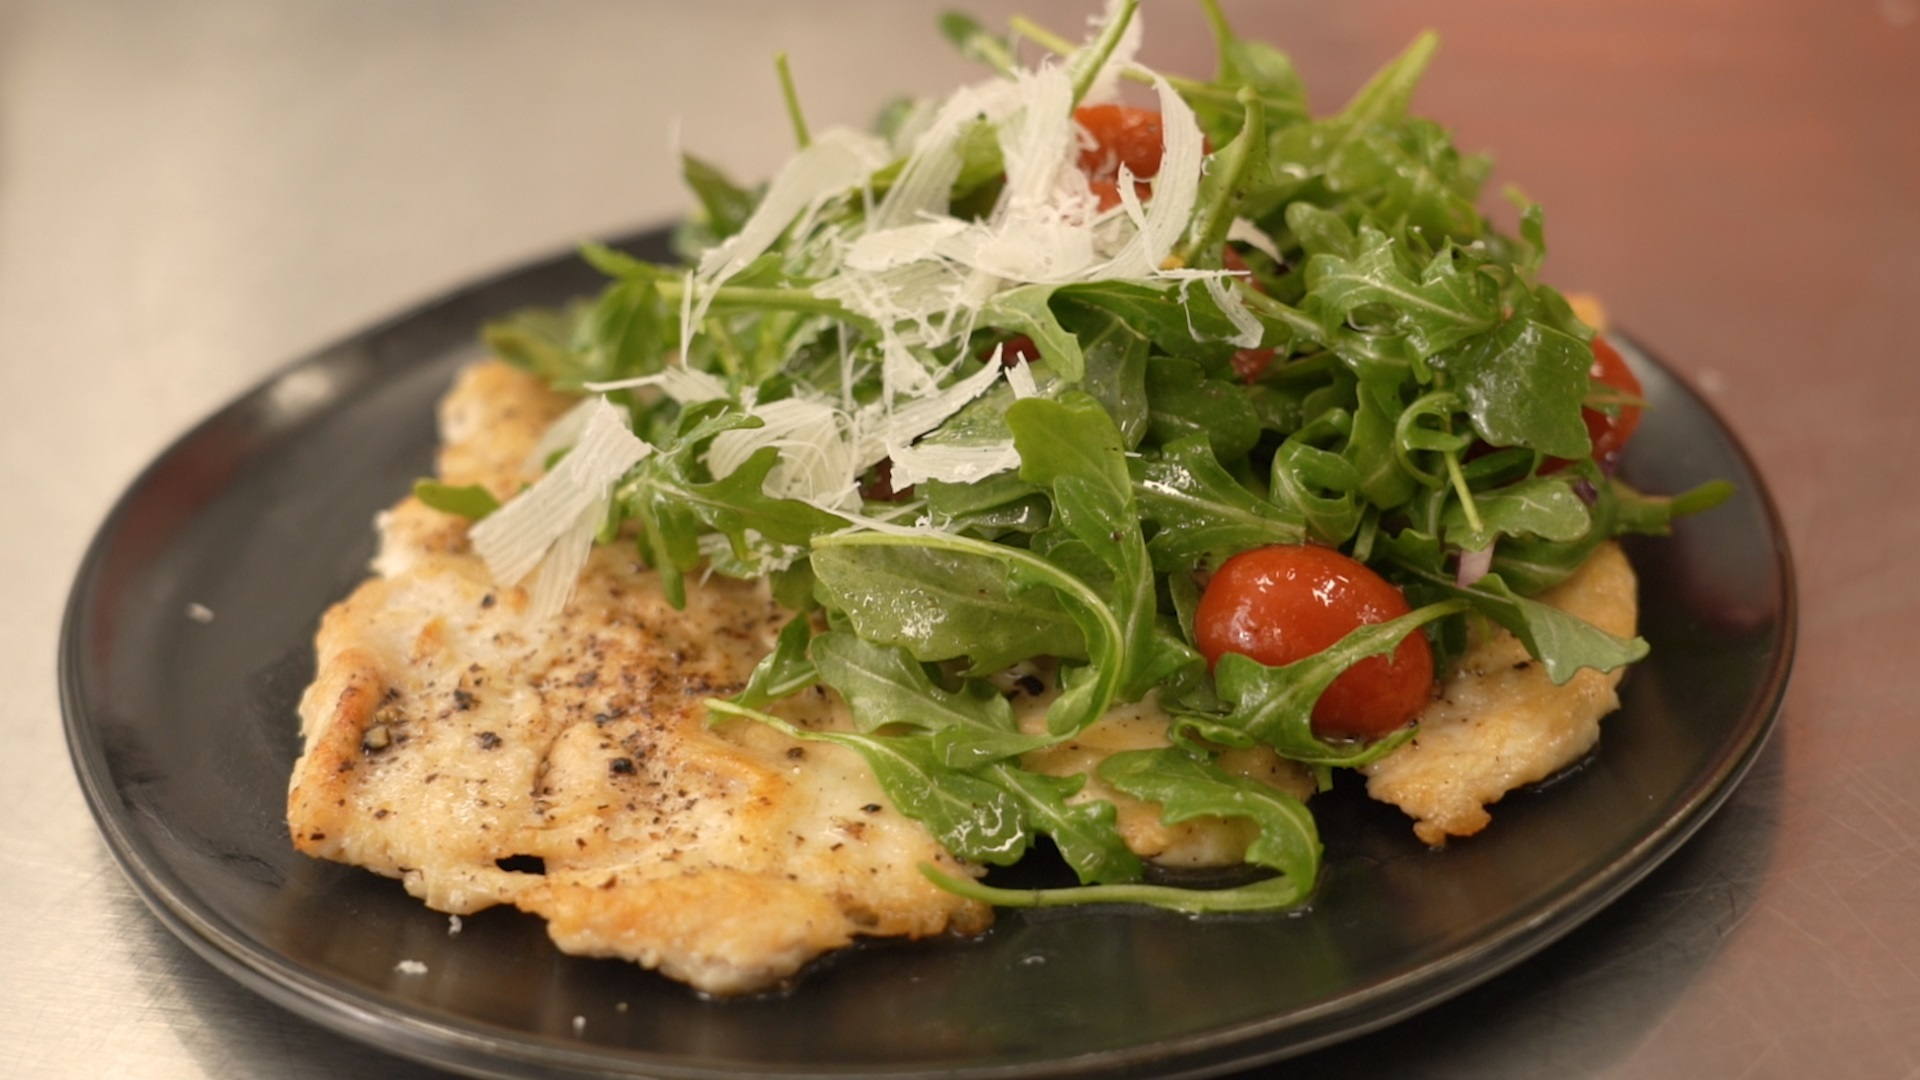 pan fried chicken breast paillard served with arugula and tomato salad topped with shaved Parmesan cheese